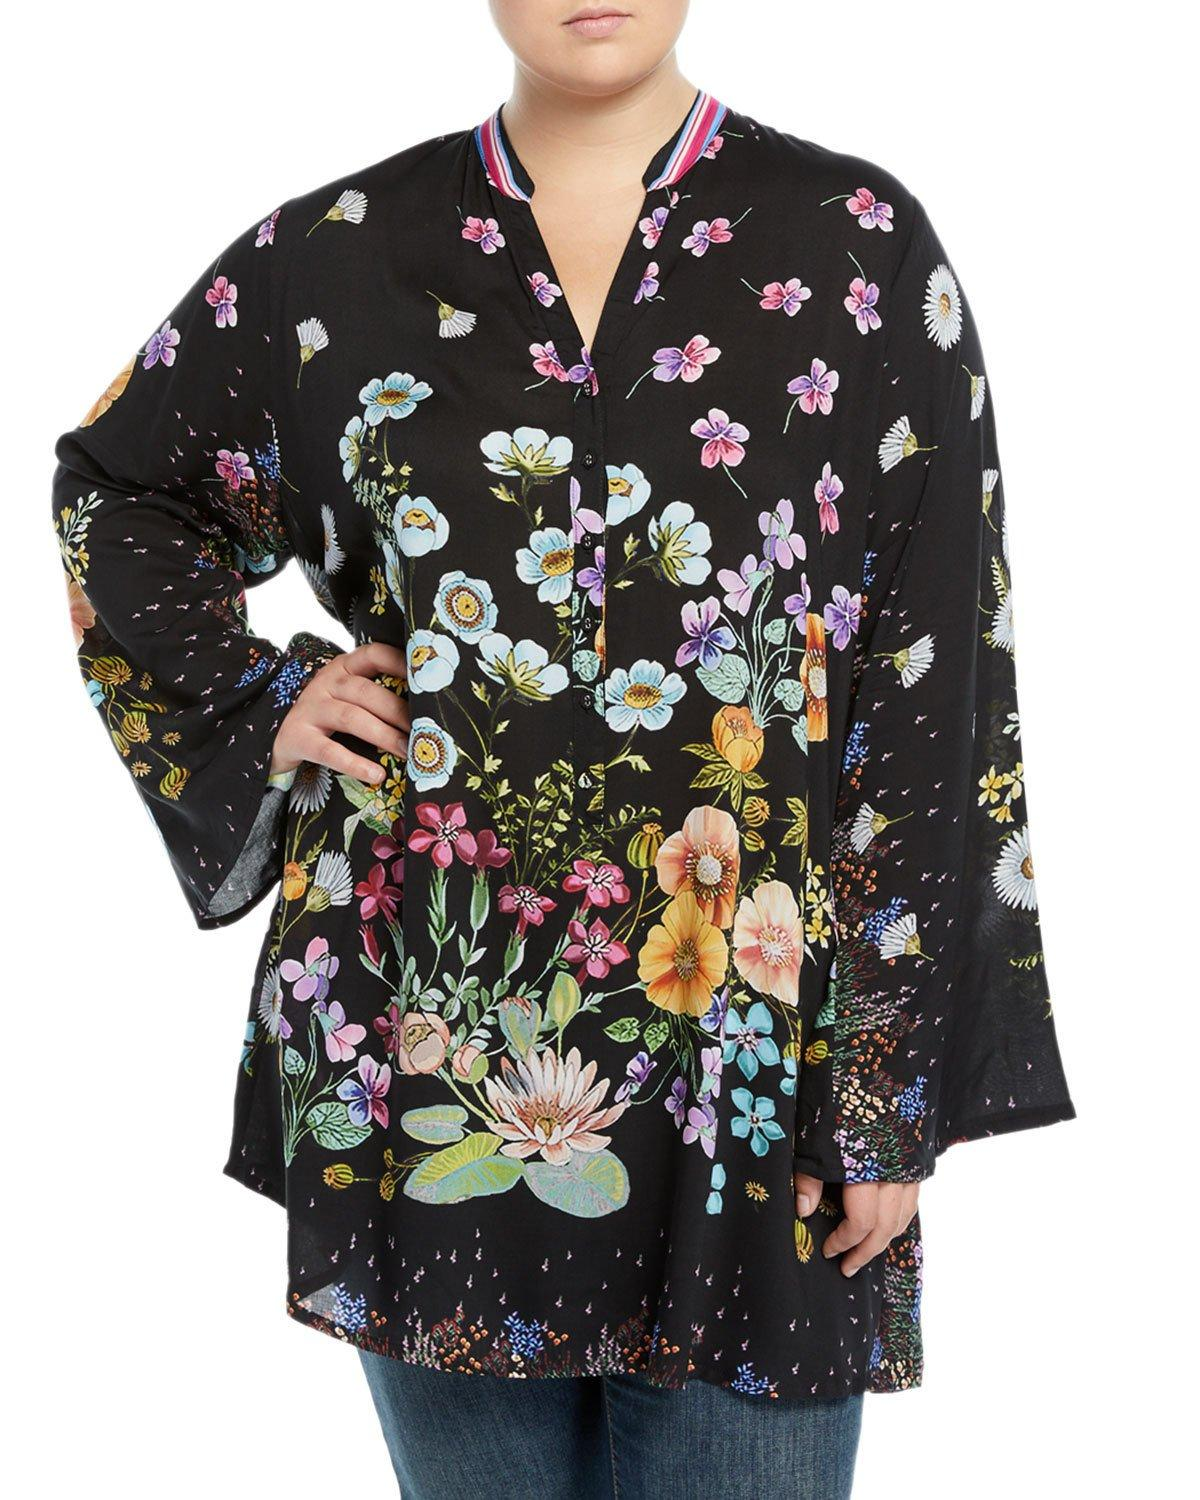 Johnny Was Lentino Floral-print Tunic, Plus Size In Multi